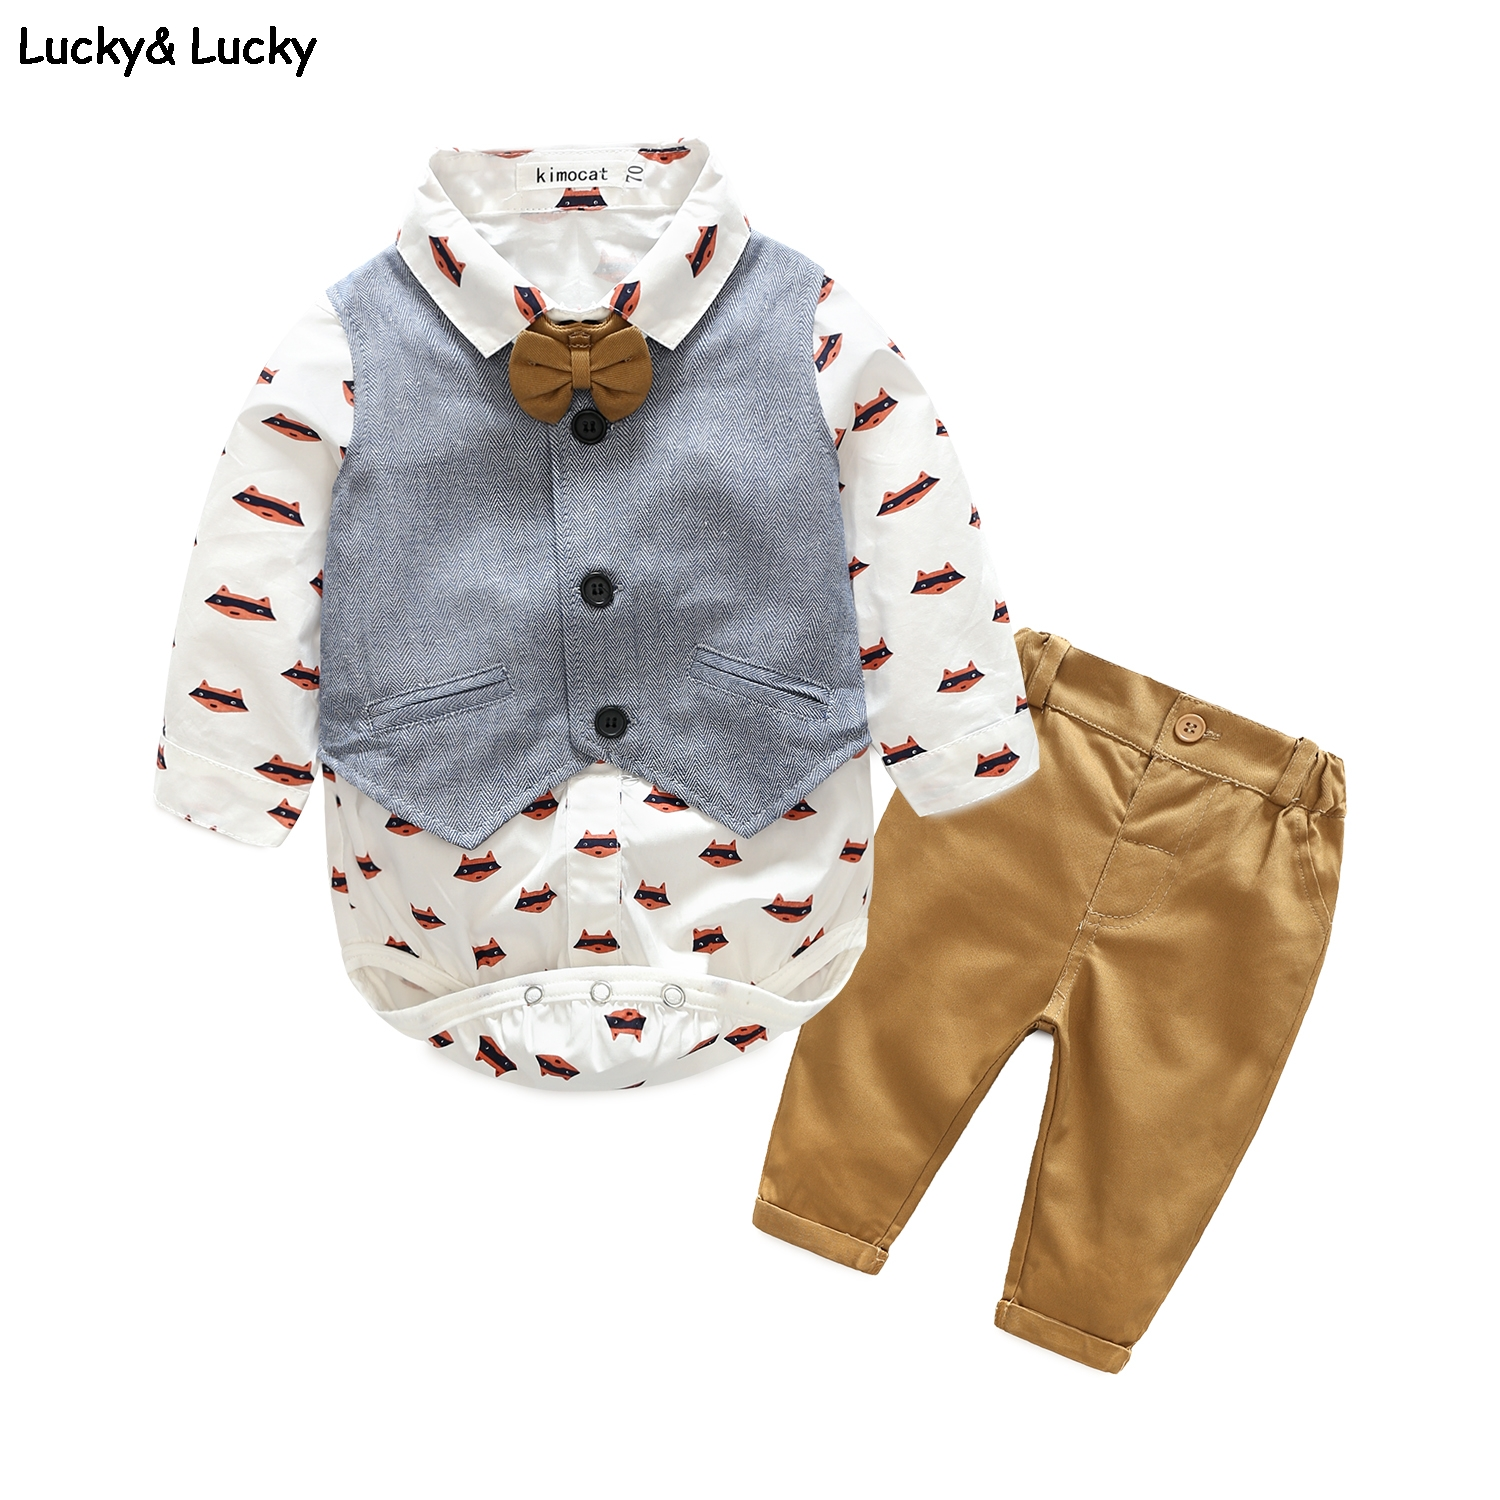 Newborns clothes casual baby boy clothes for newborn cotton infant